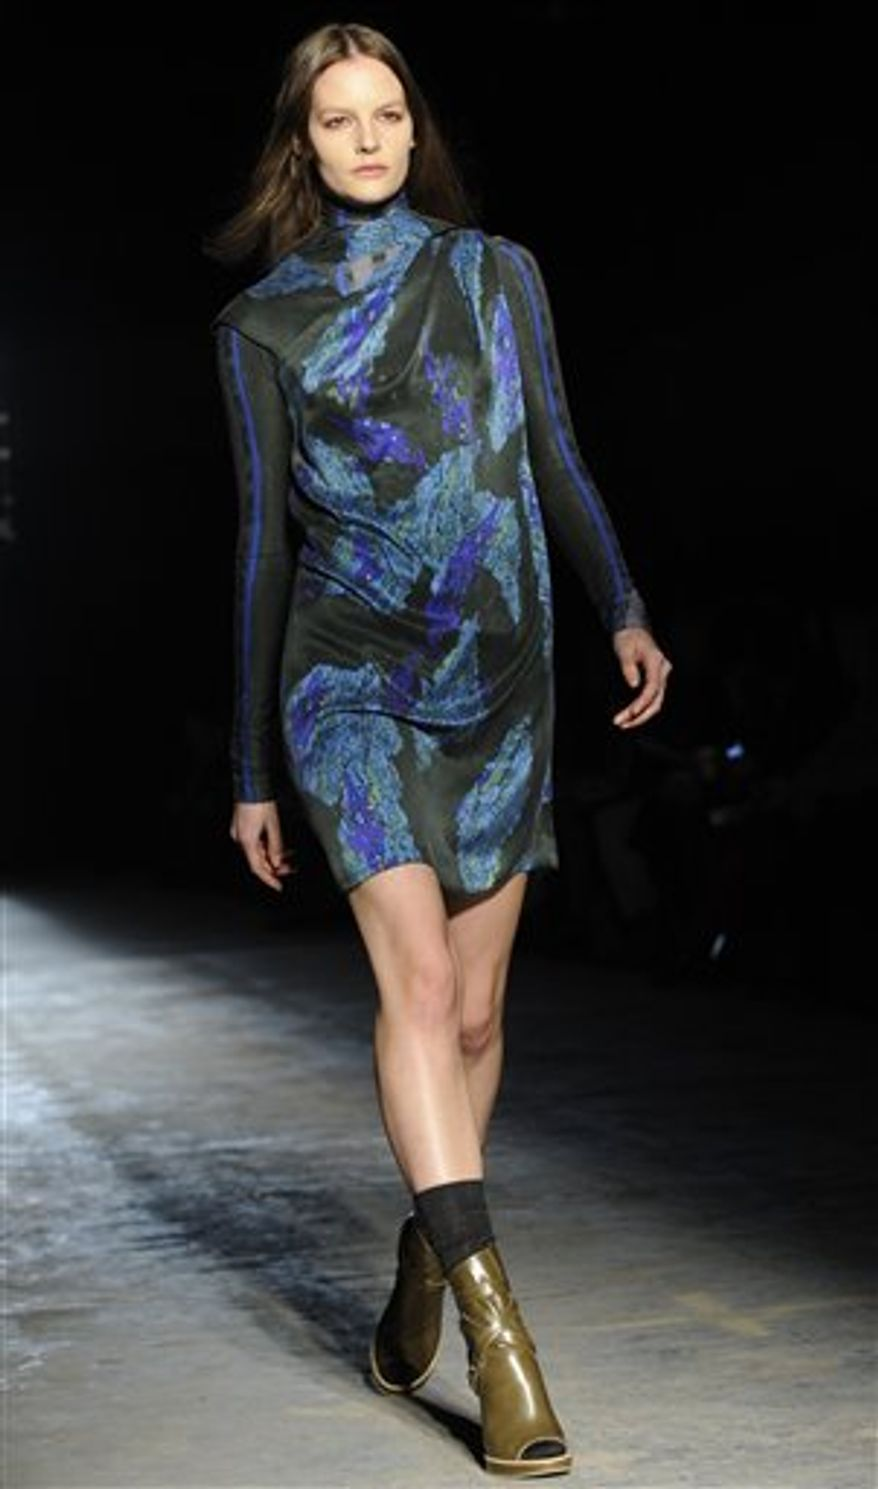 The Edun Fall 2011 collection is modeled during Fashion Week, Saturday, Feb. 12, 2011, in New York. (AP Photo/Louis Lanzano)